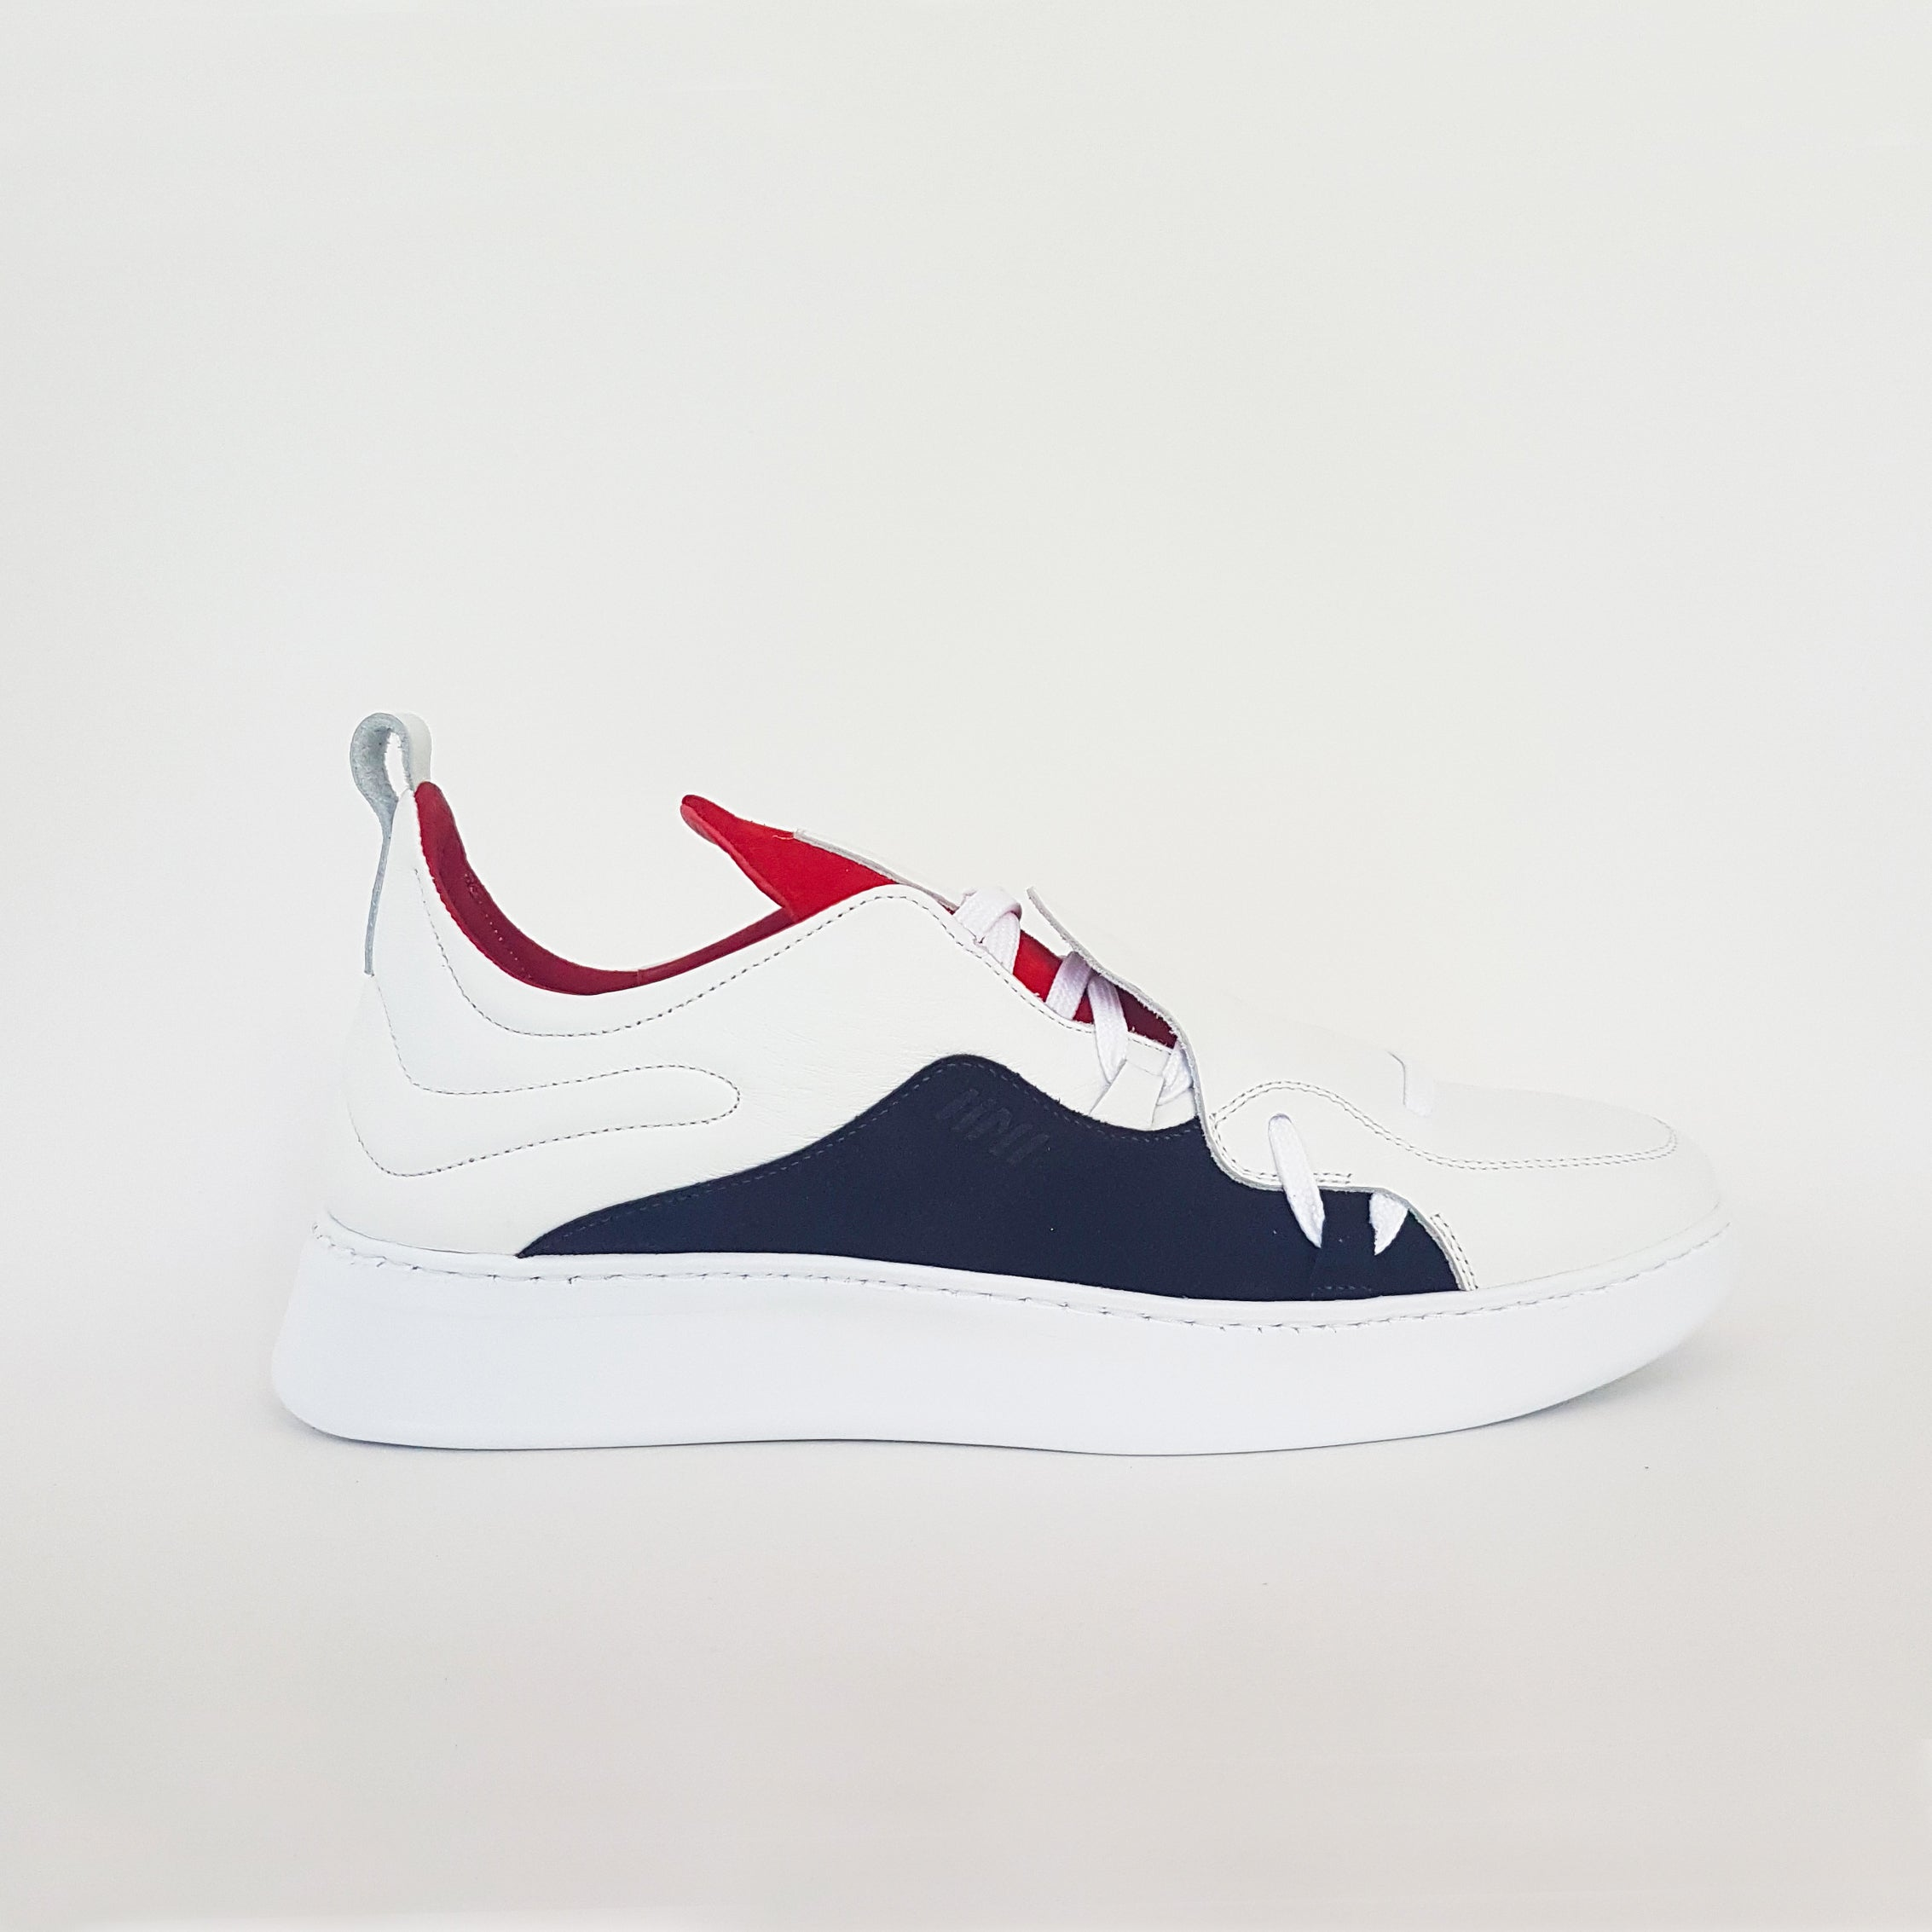 317 FLAG LOW